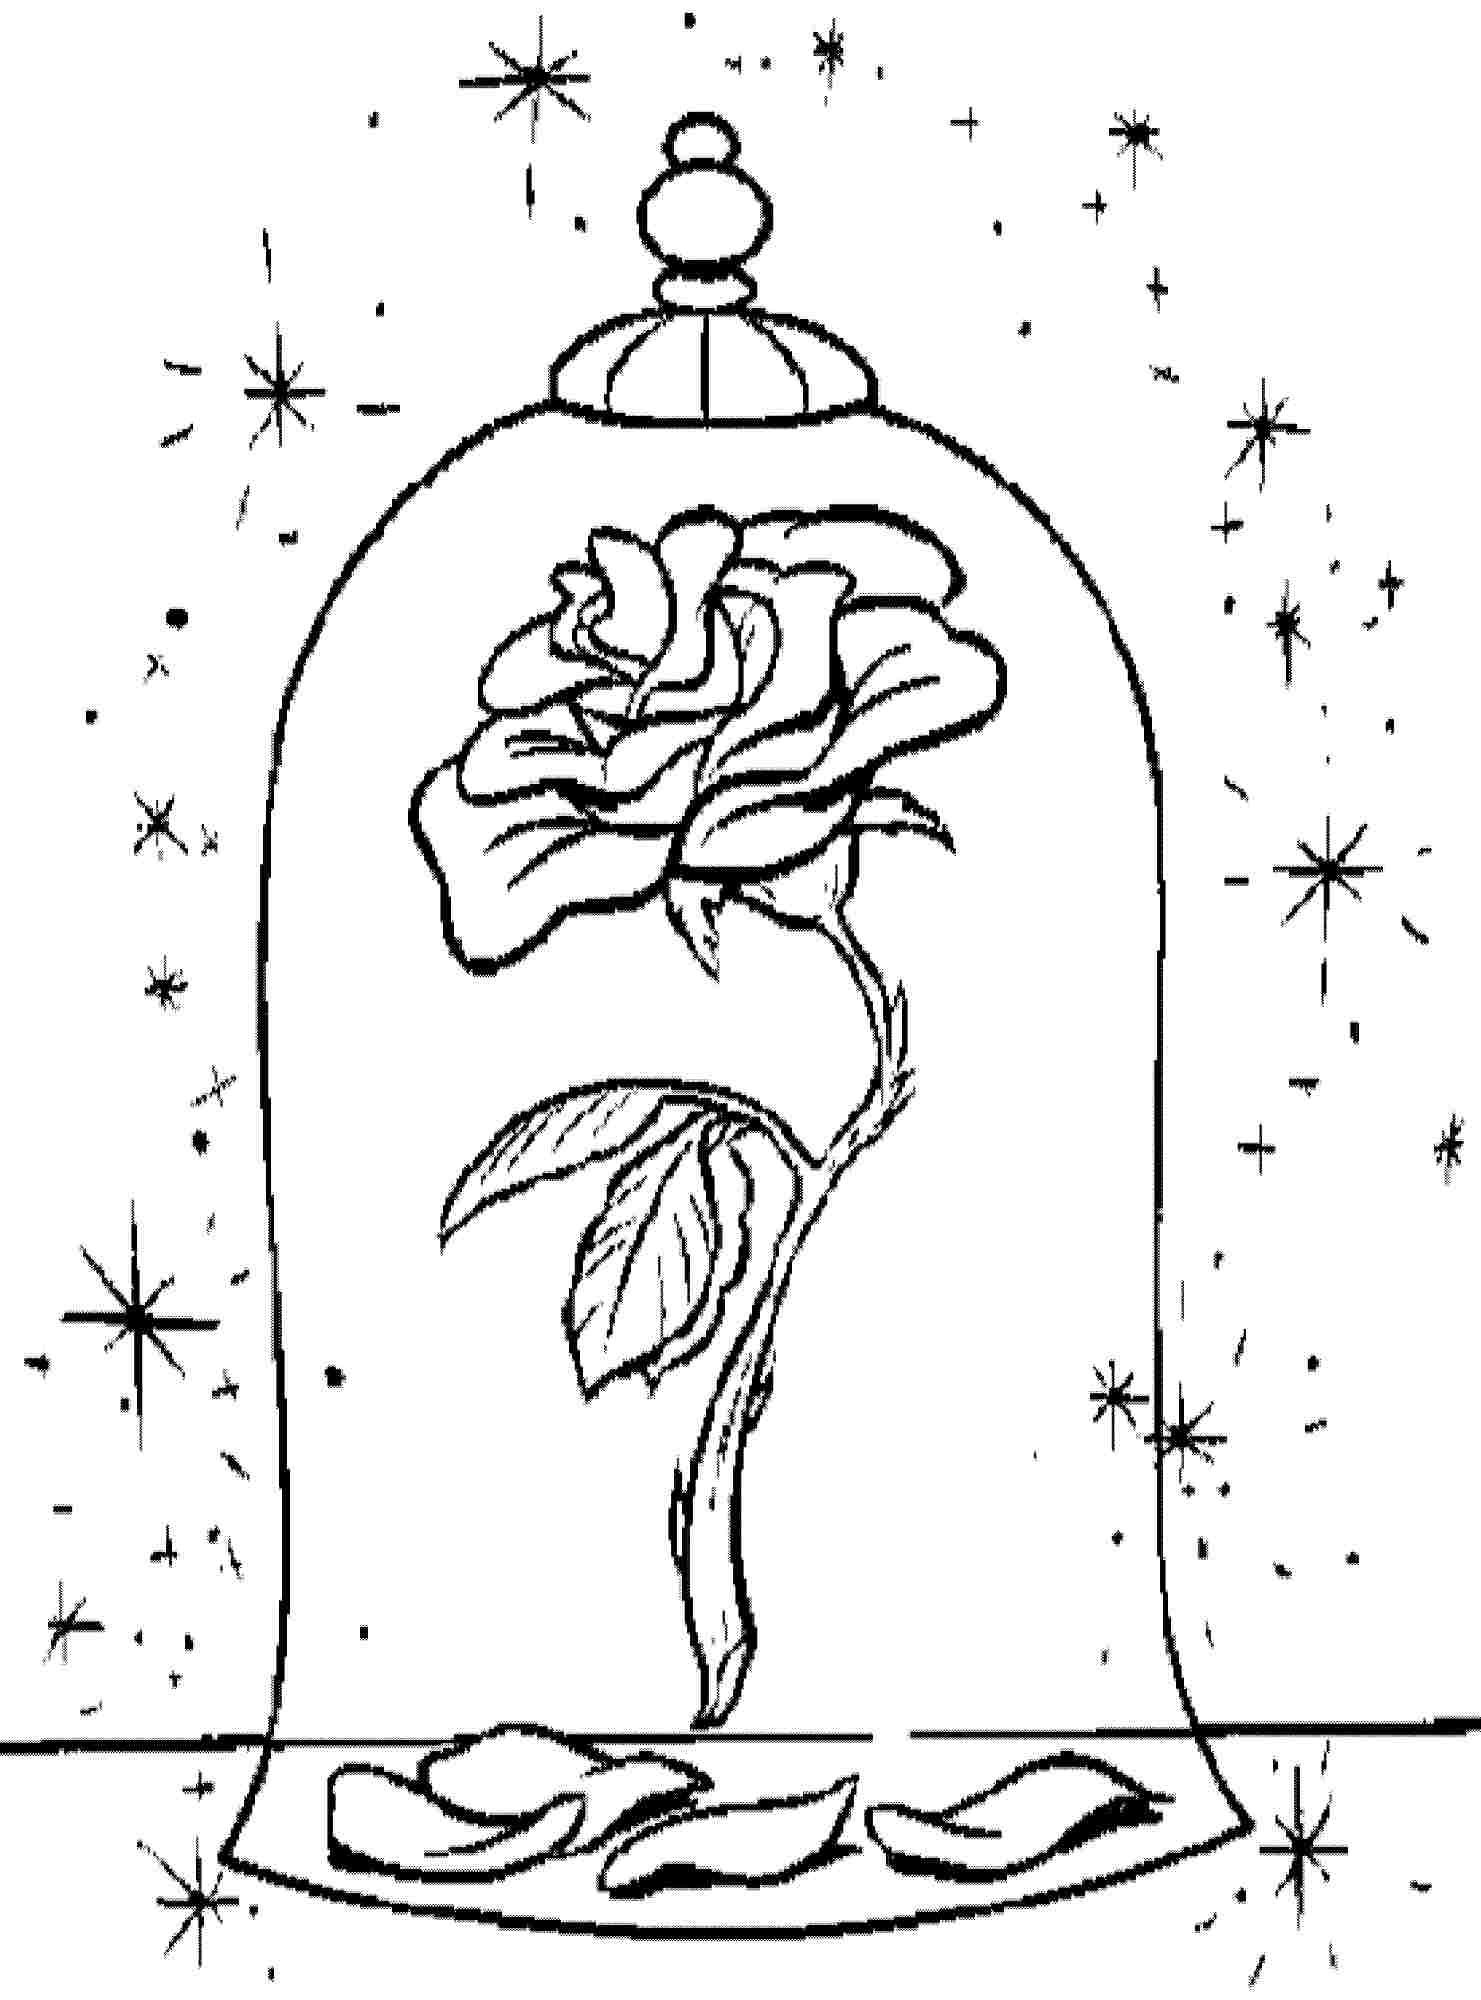 coloring pages beauty and the beast walt disney coloring pages princess belle the beast and pages beauty coloring the beast